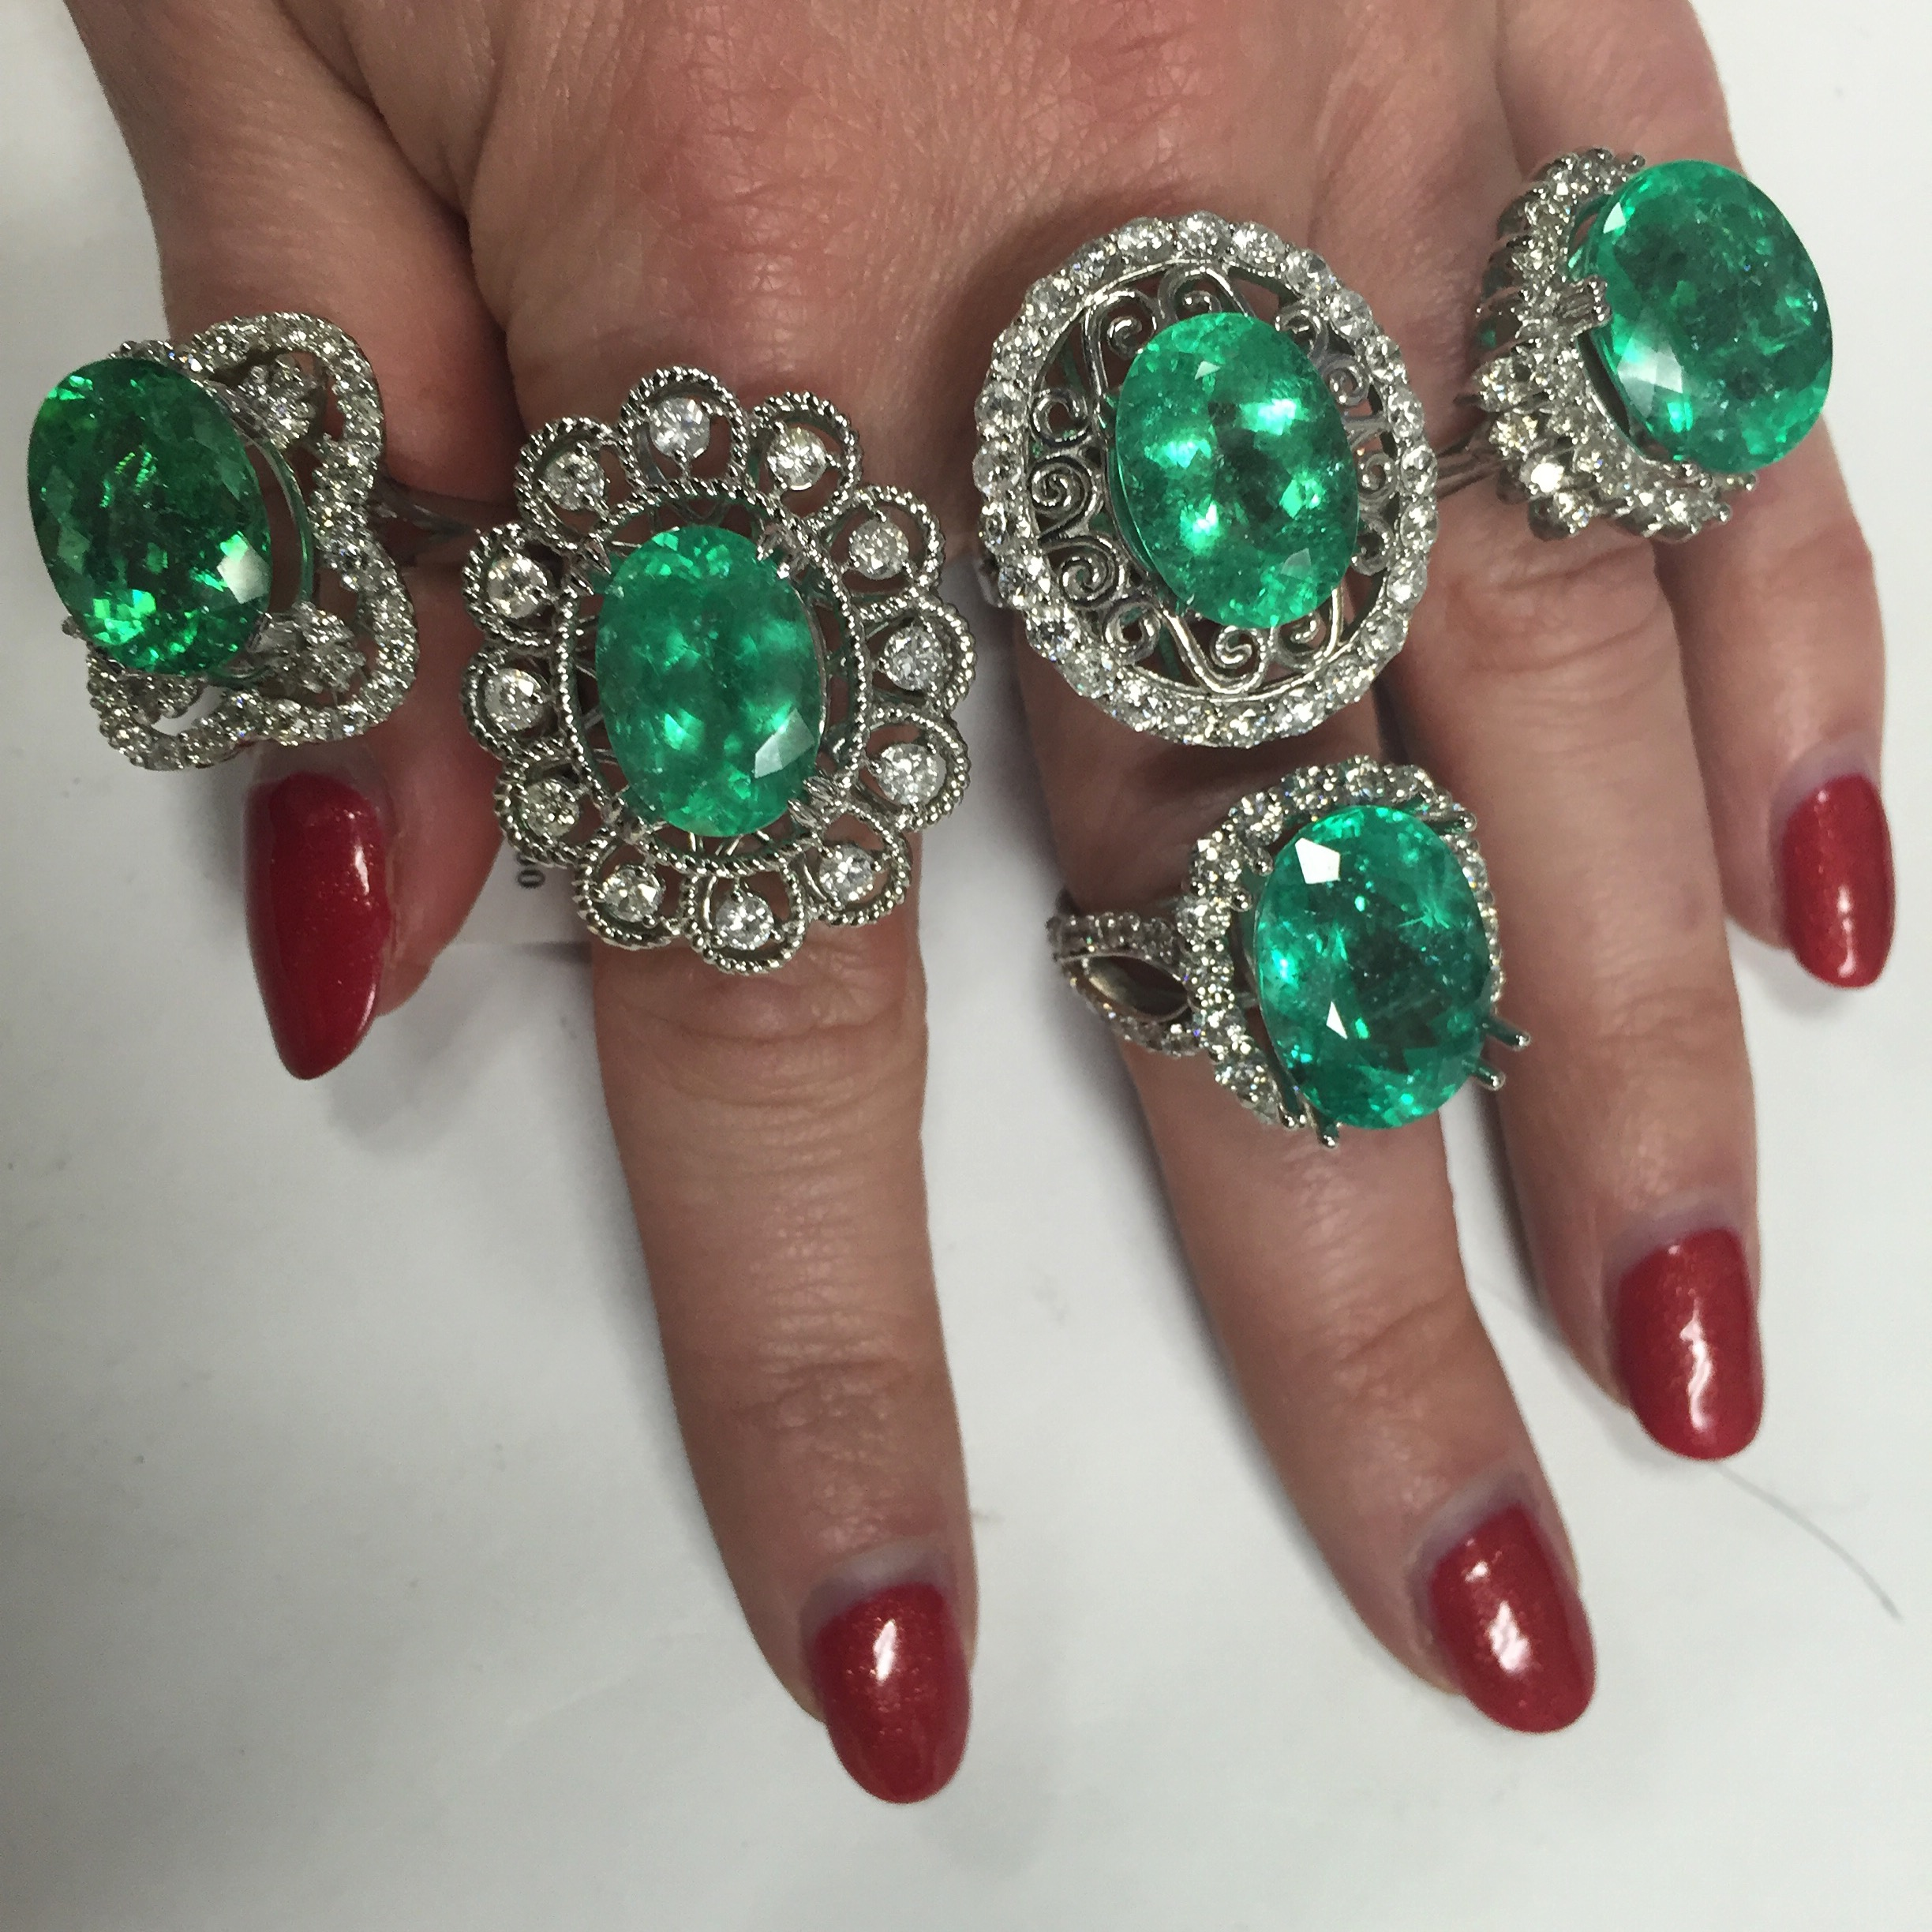 Paraiba Tourmalines elegantly stacked on her hand